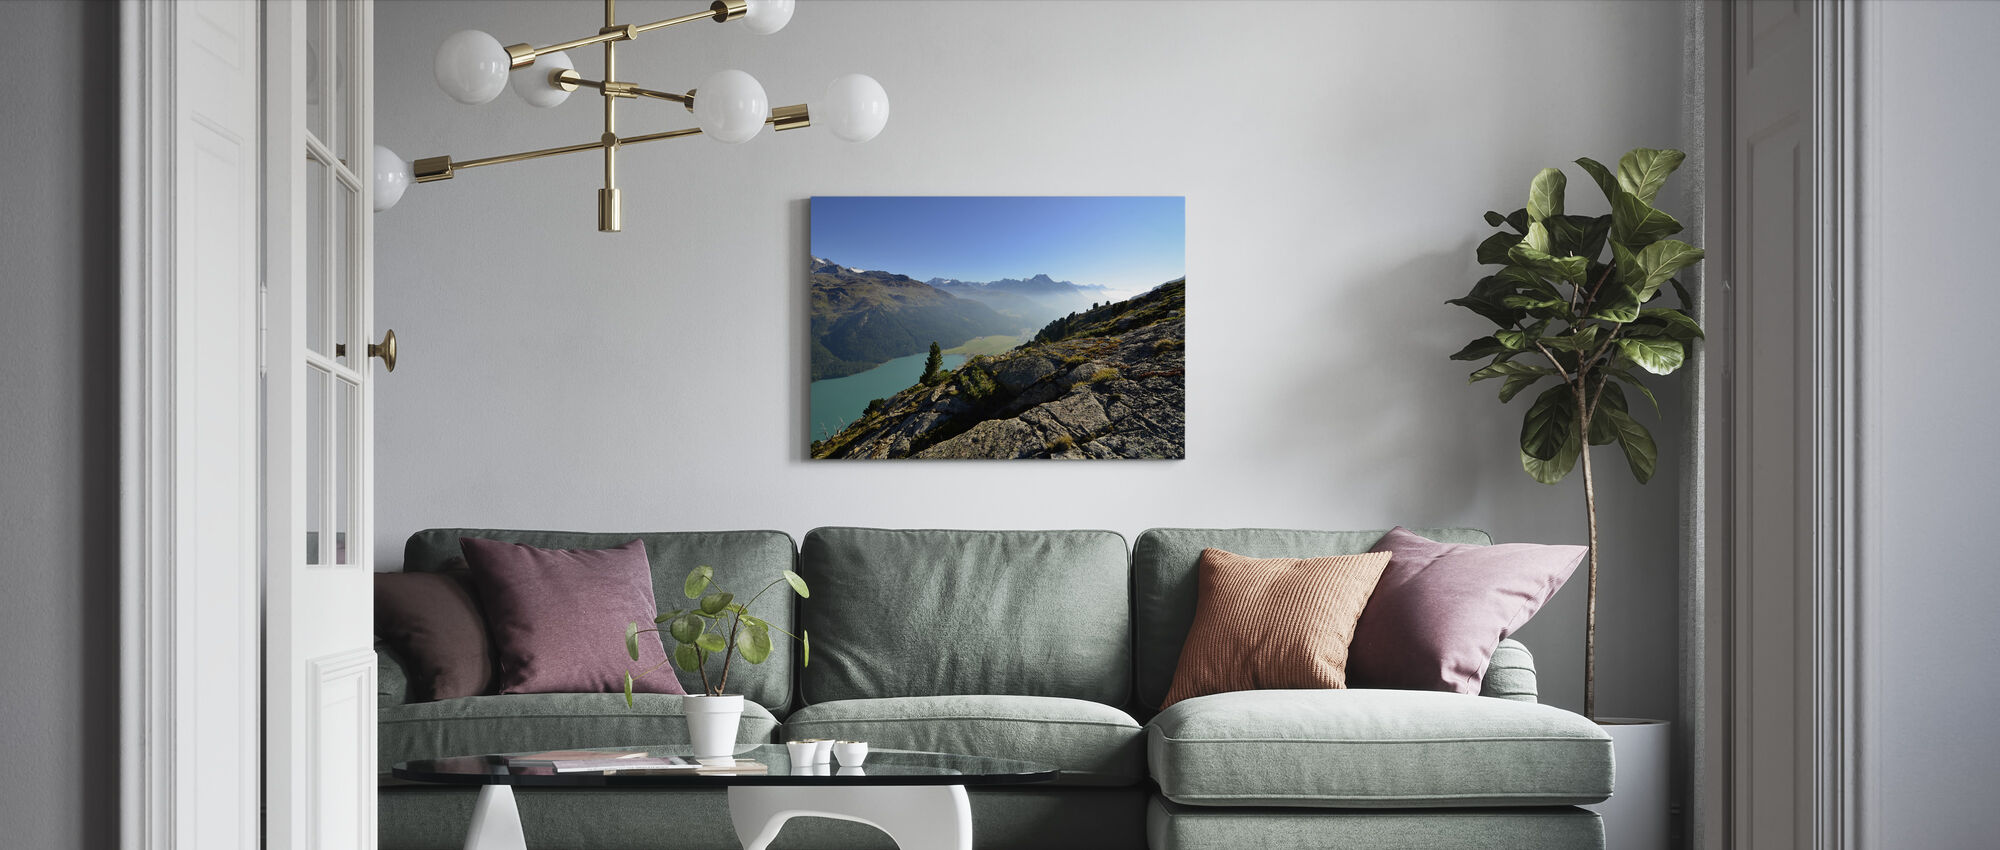 Afternoon Haze - Canvas print - Living Room